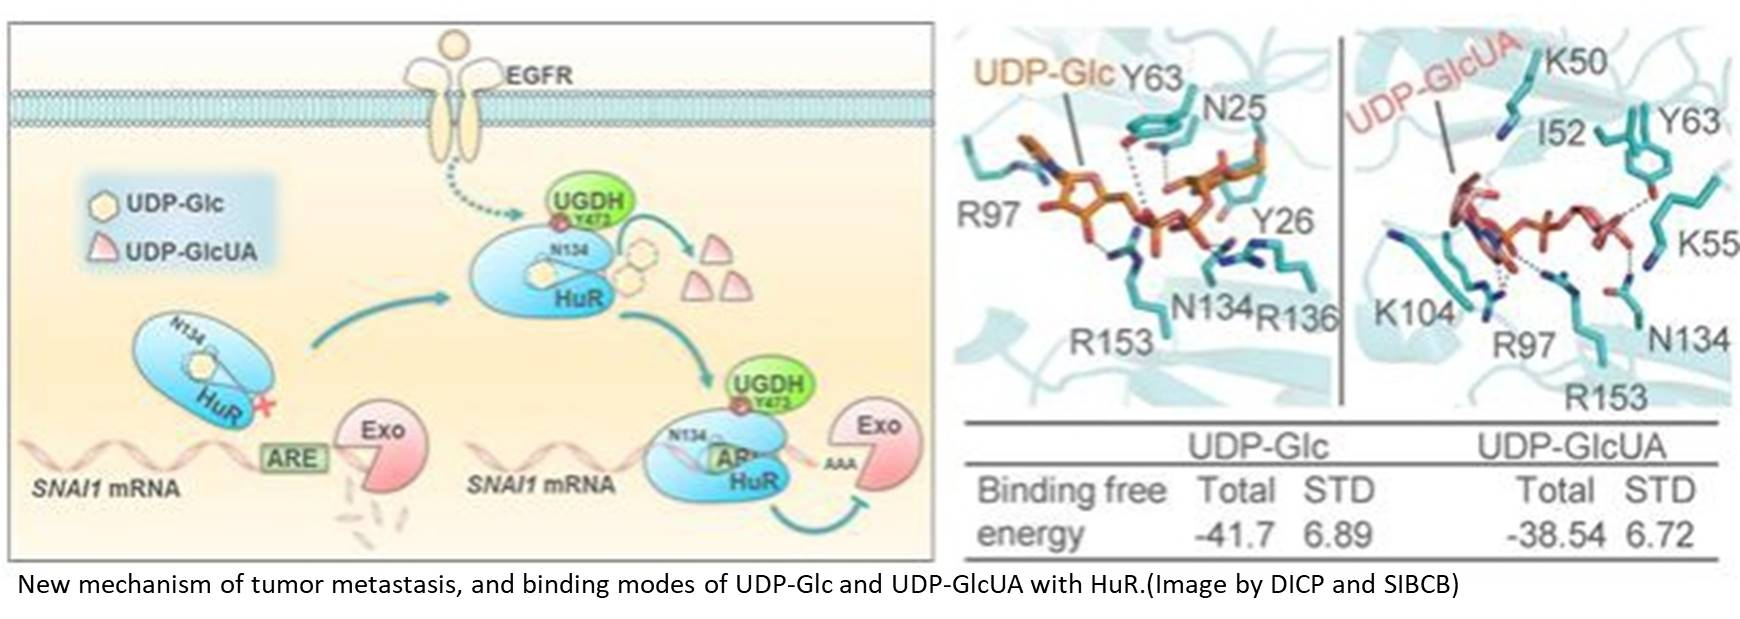 Mechanism of Tumor Metastasis and Tumor-suppressive Role of UDP-glucose Revealed